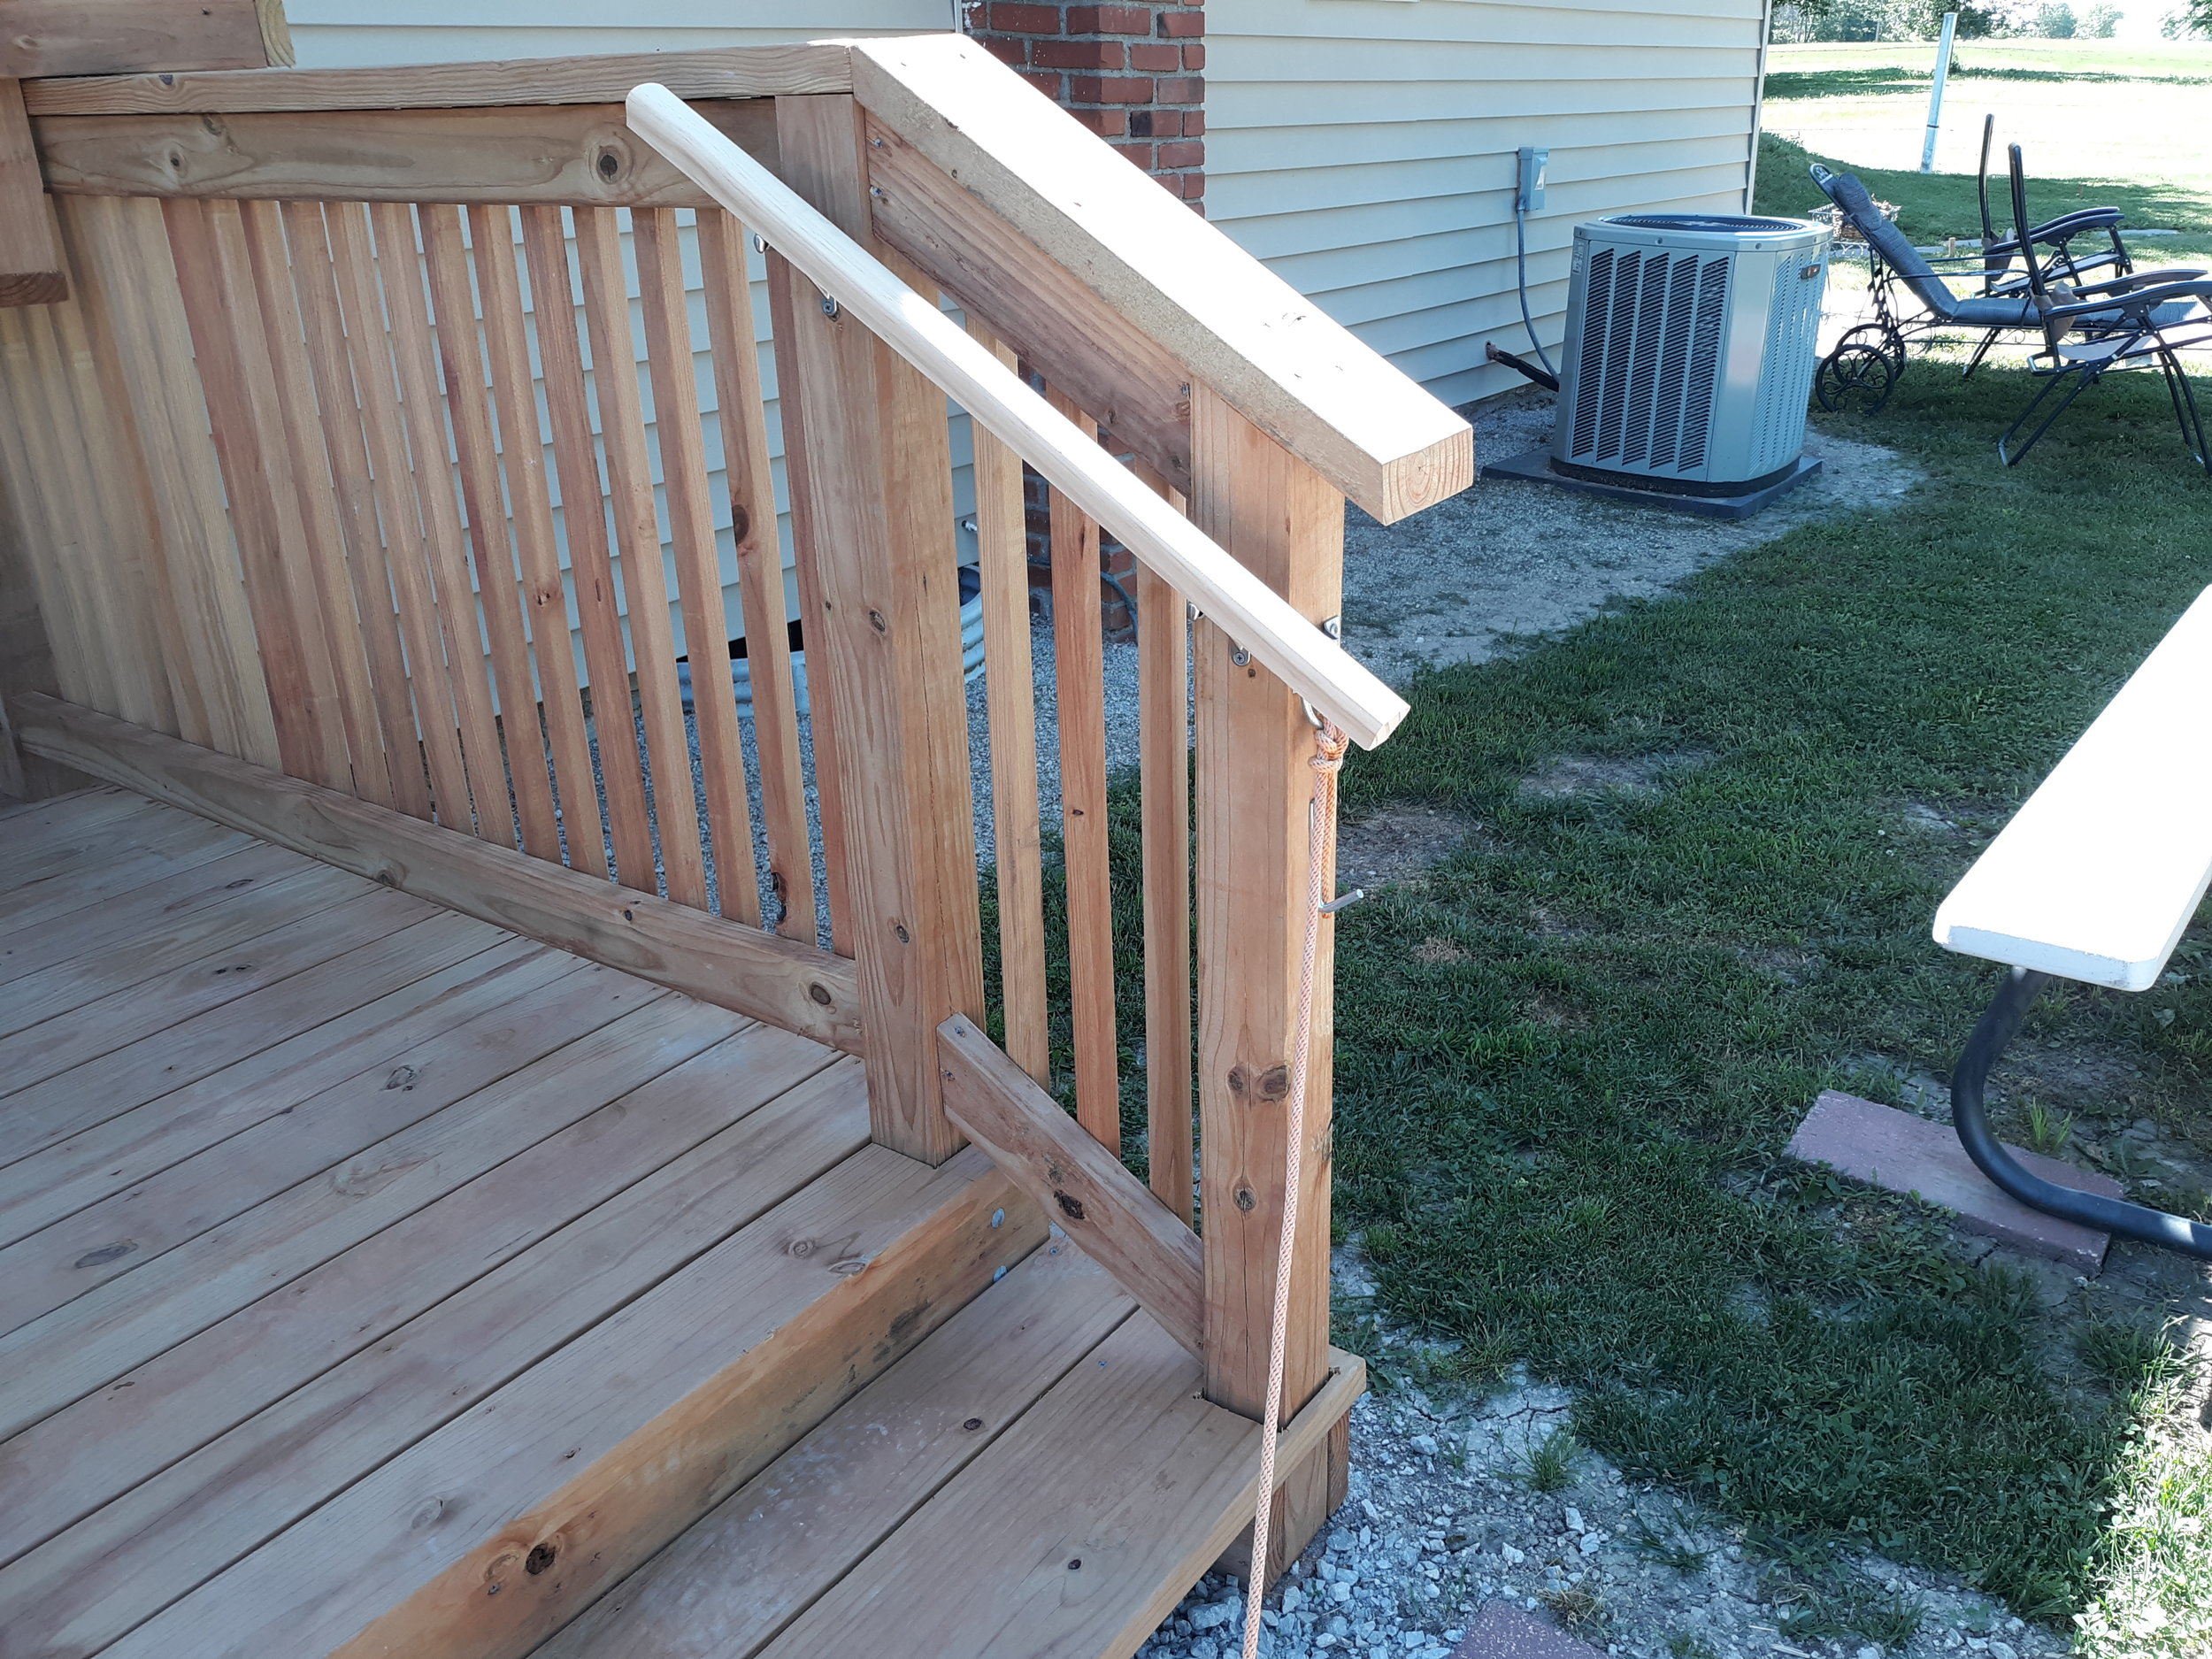 Photo of the rail and handrail on the new stoop.